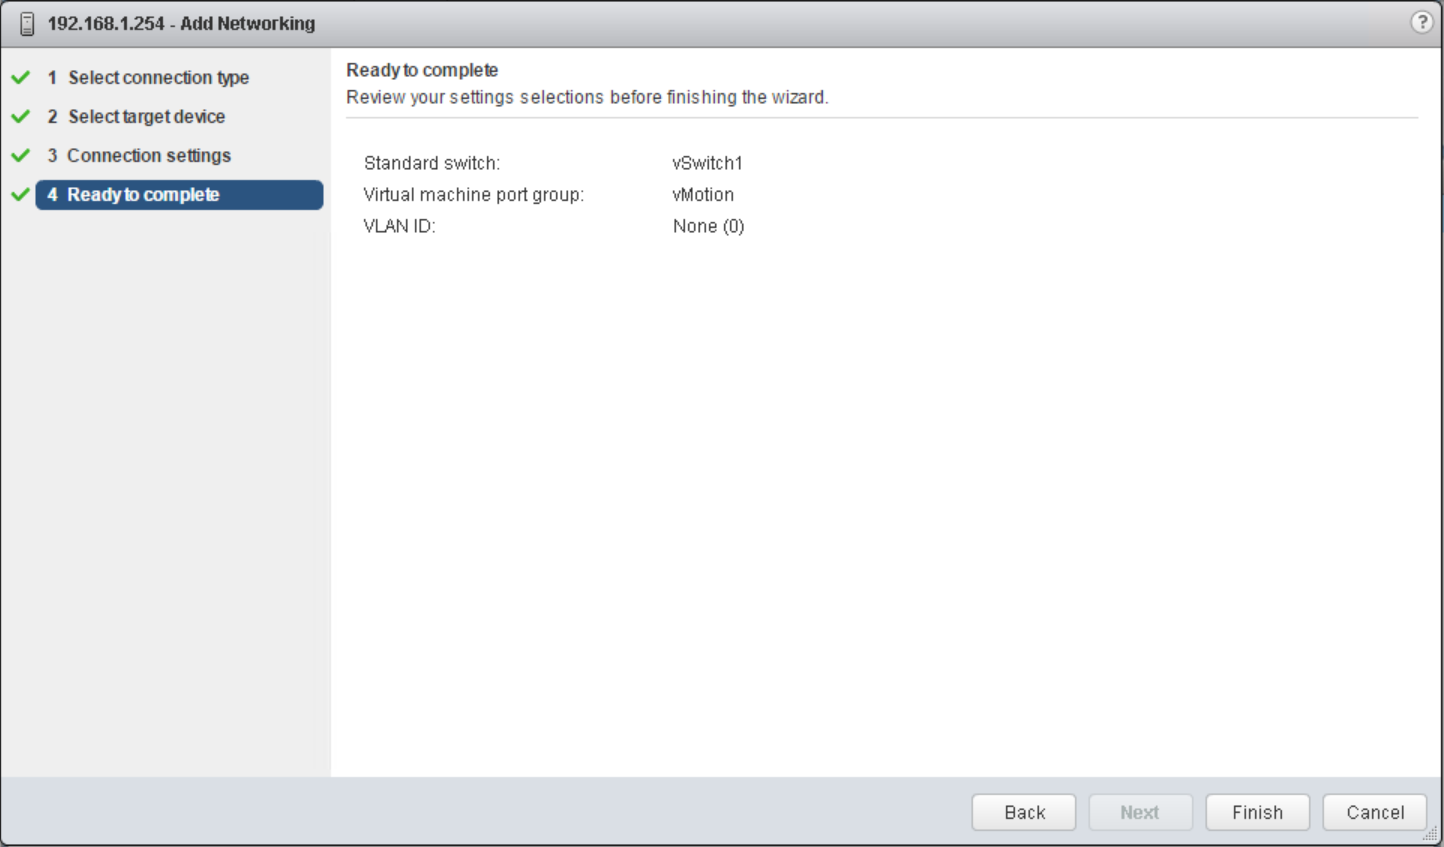 domalab.com vSphere Standard Switches wizard complete